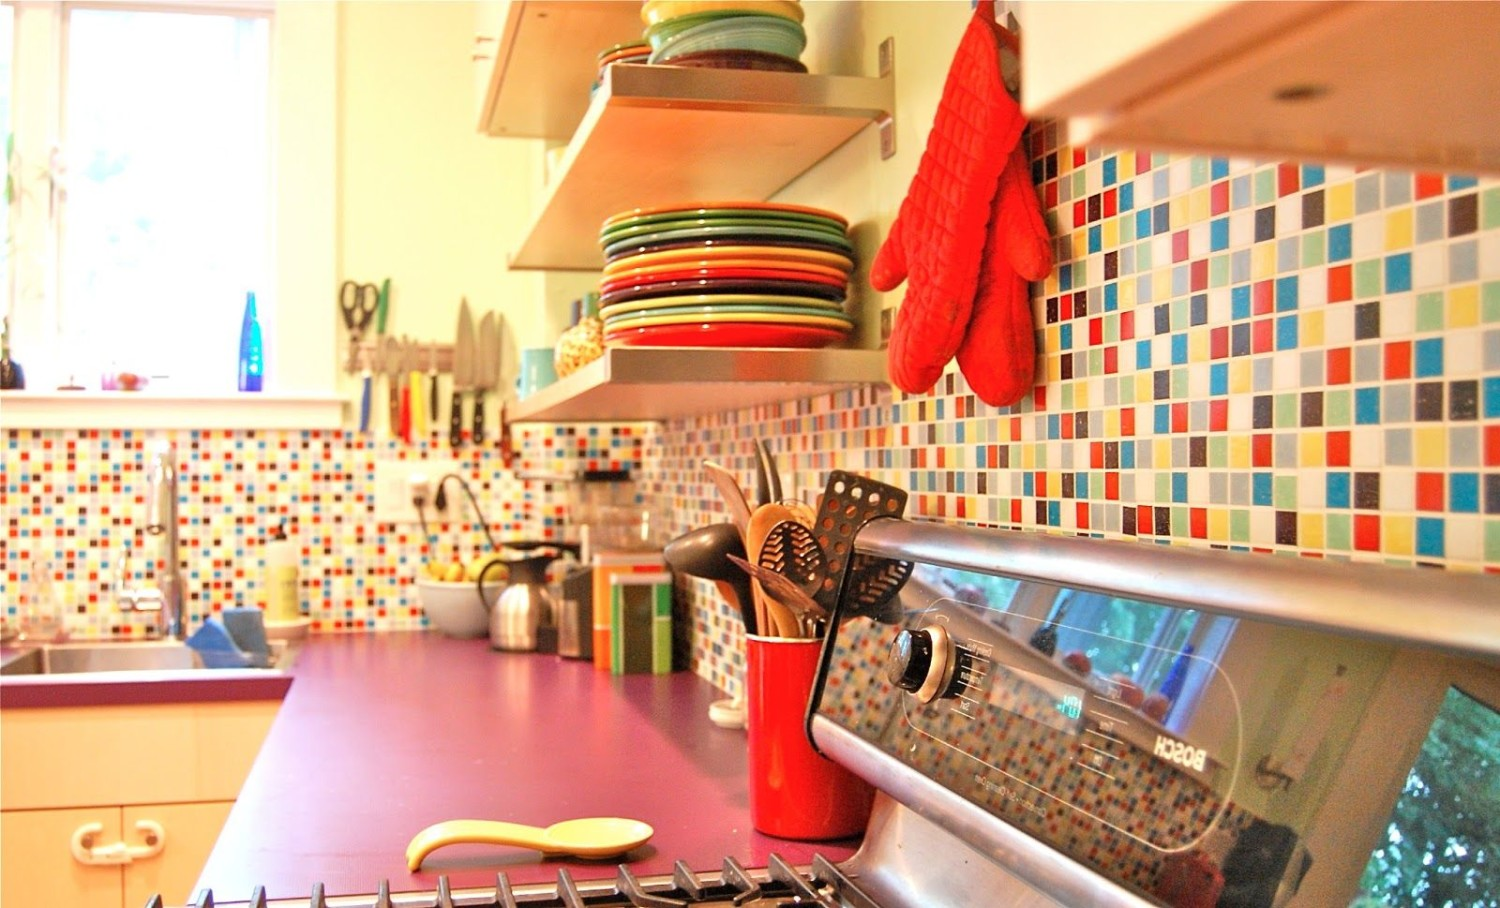 Colorful Kitchen (Sumber: pinterest.com)